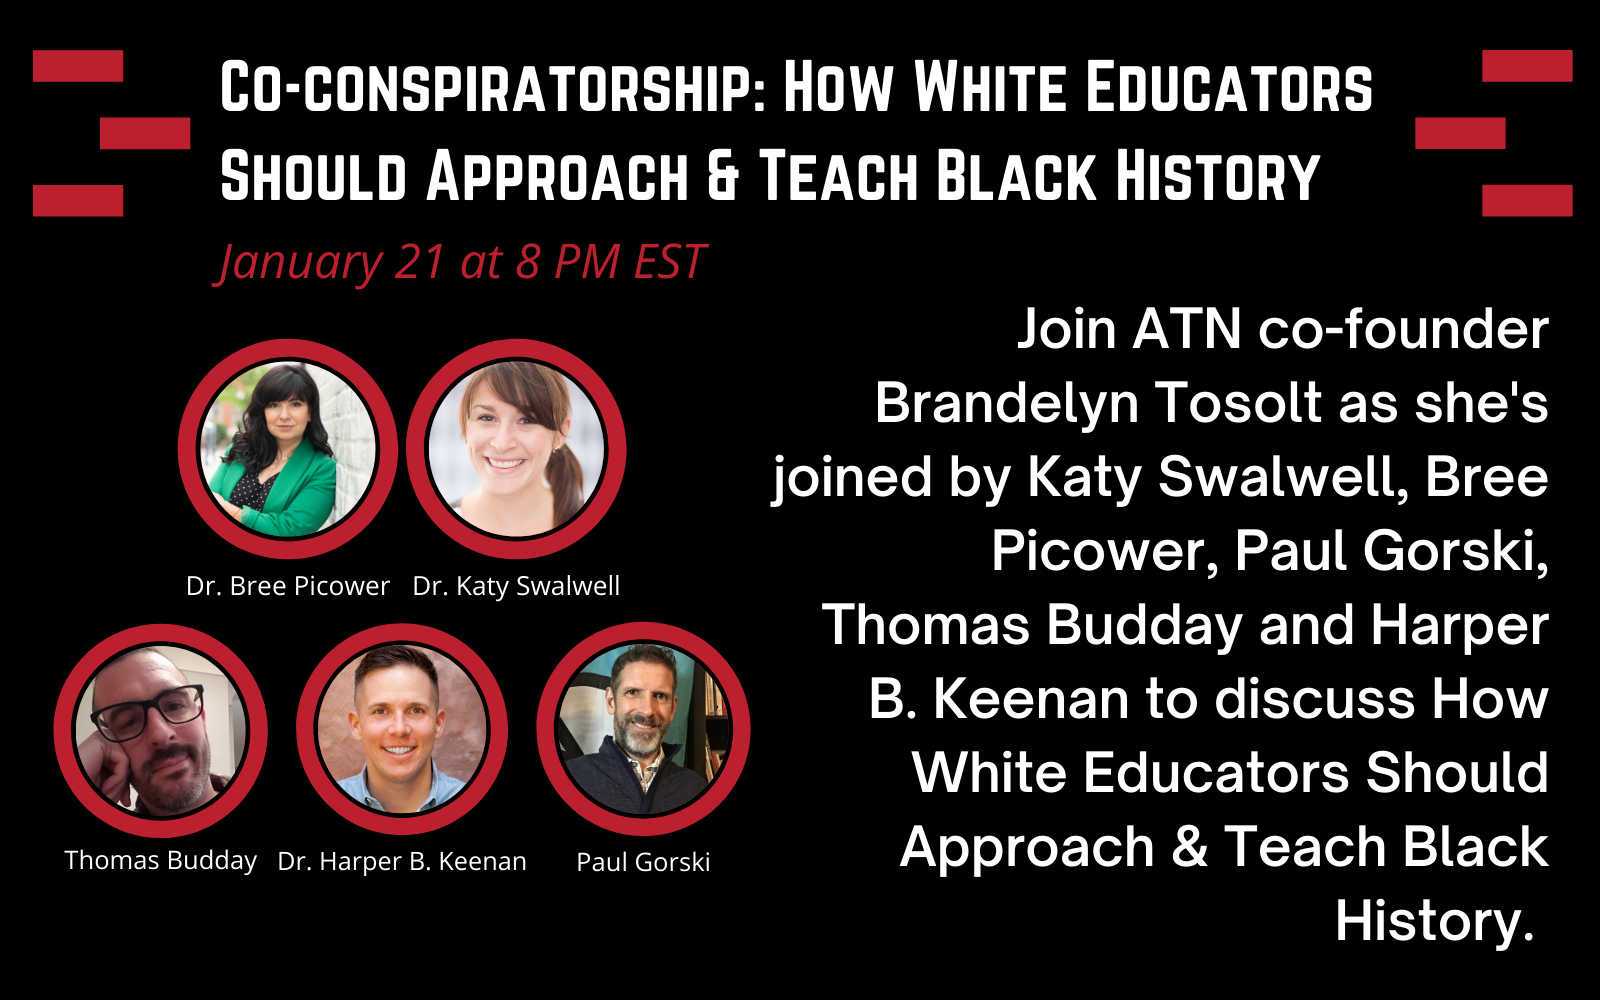 Co-conspiratorship: How White Educators Should Approach & Teach Black History image